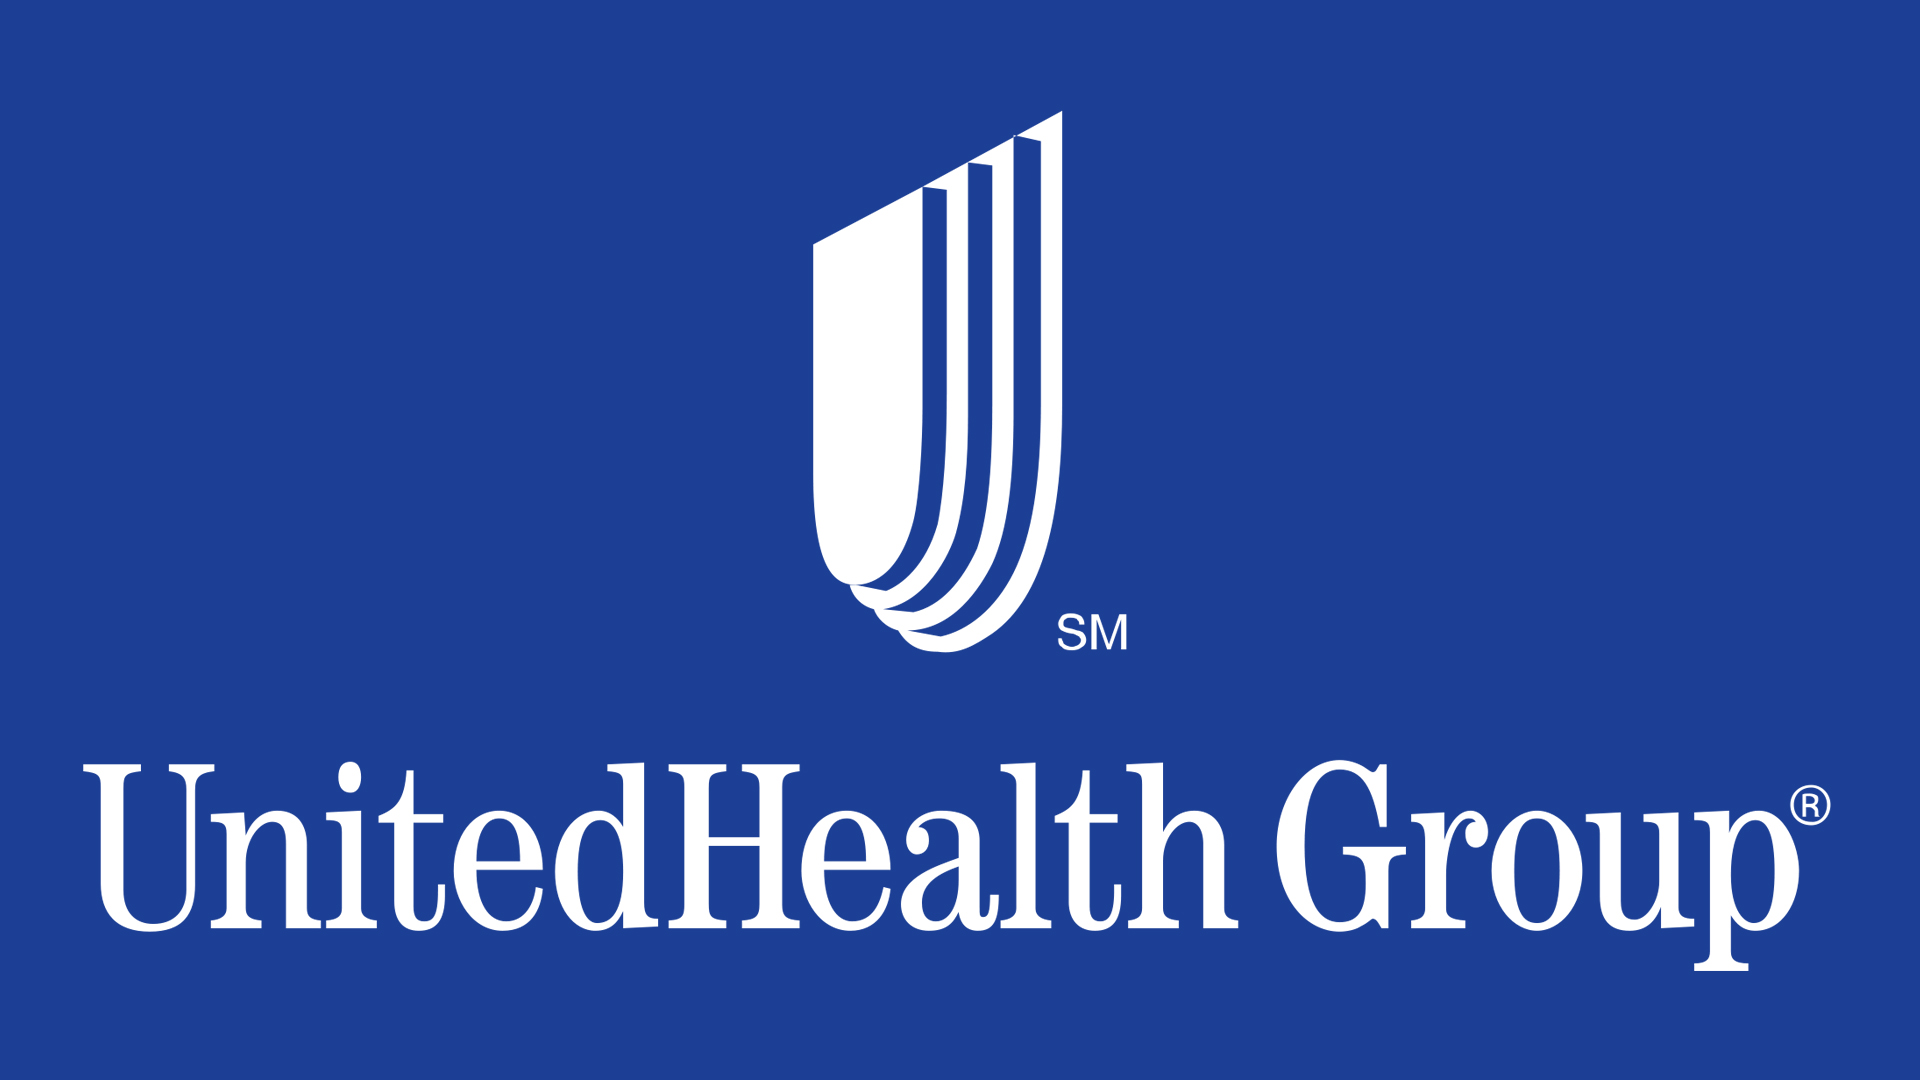 UnitedHealth Group Announces Atlanta HBCU Partnership 825 1920x1080